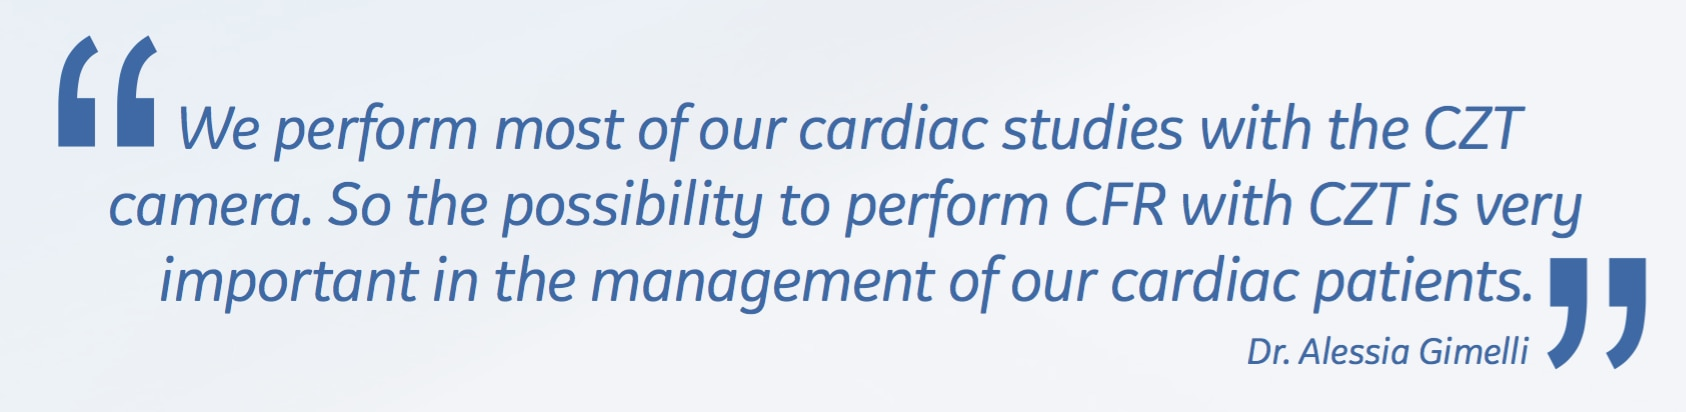 We perform most of our cardiac studies with the CZT camera. So the possibility to perform CFR with CZT is very important in the management of our cardiac patients.